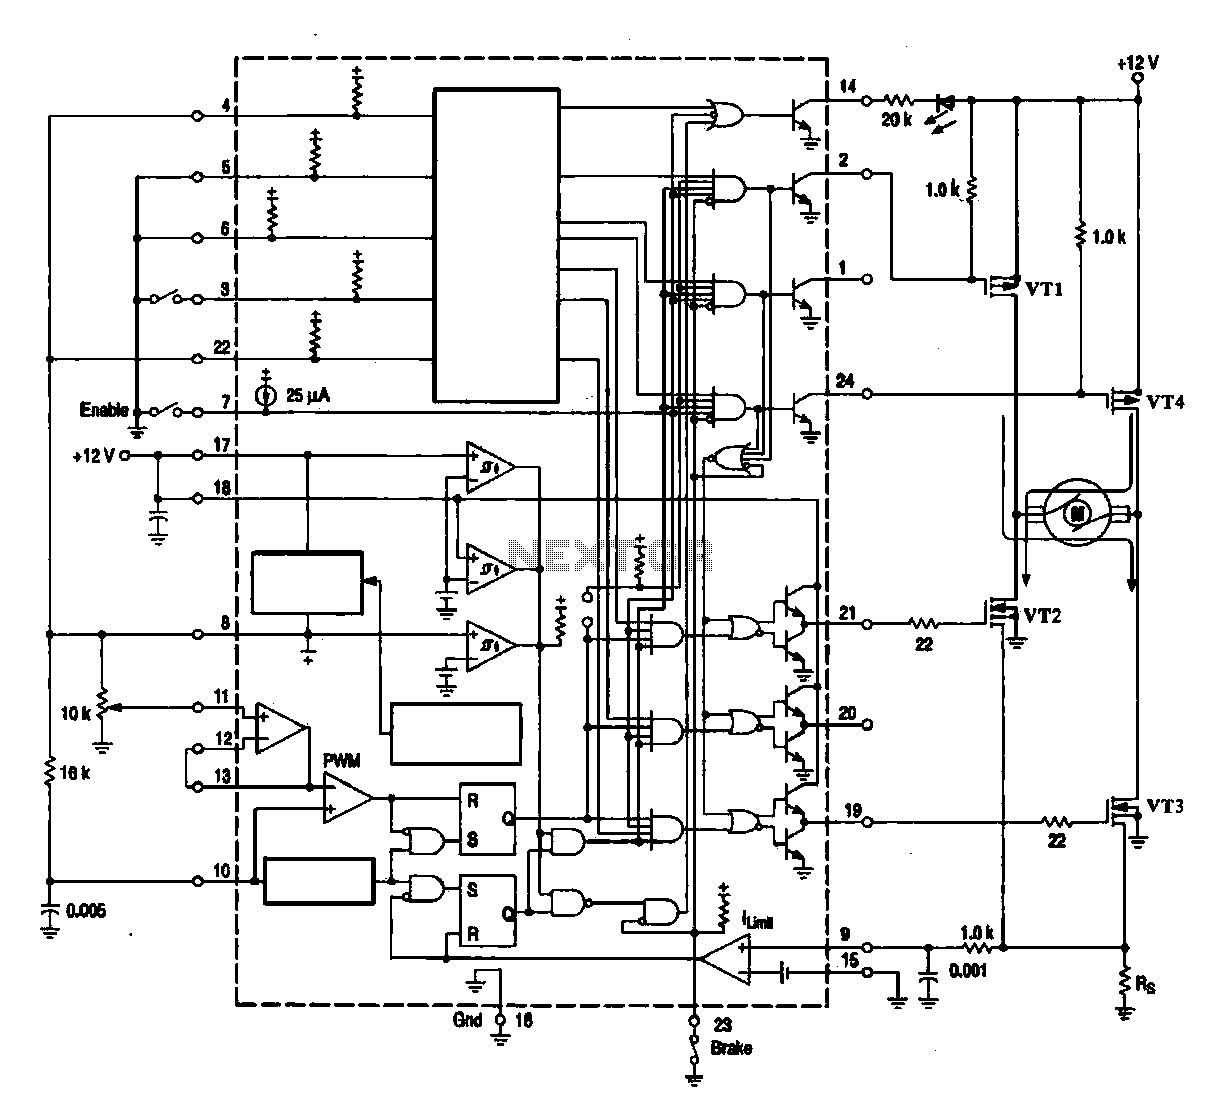 hight resolution of circuit ring shows a typical dc brush motor driver circuit diagram 4 dc brush motor wiring diagram